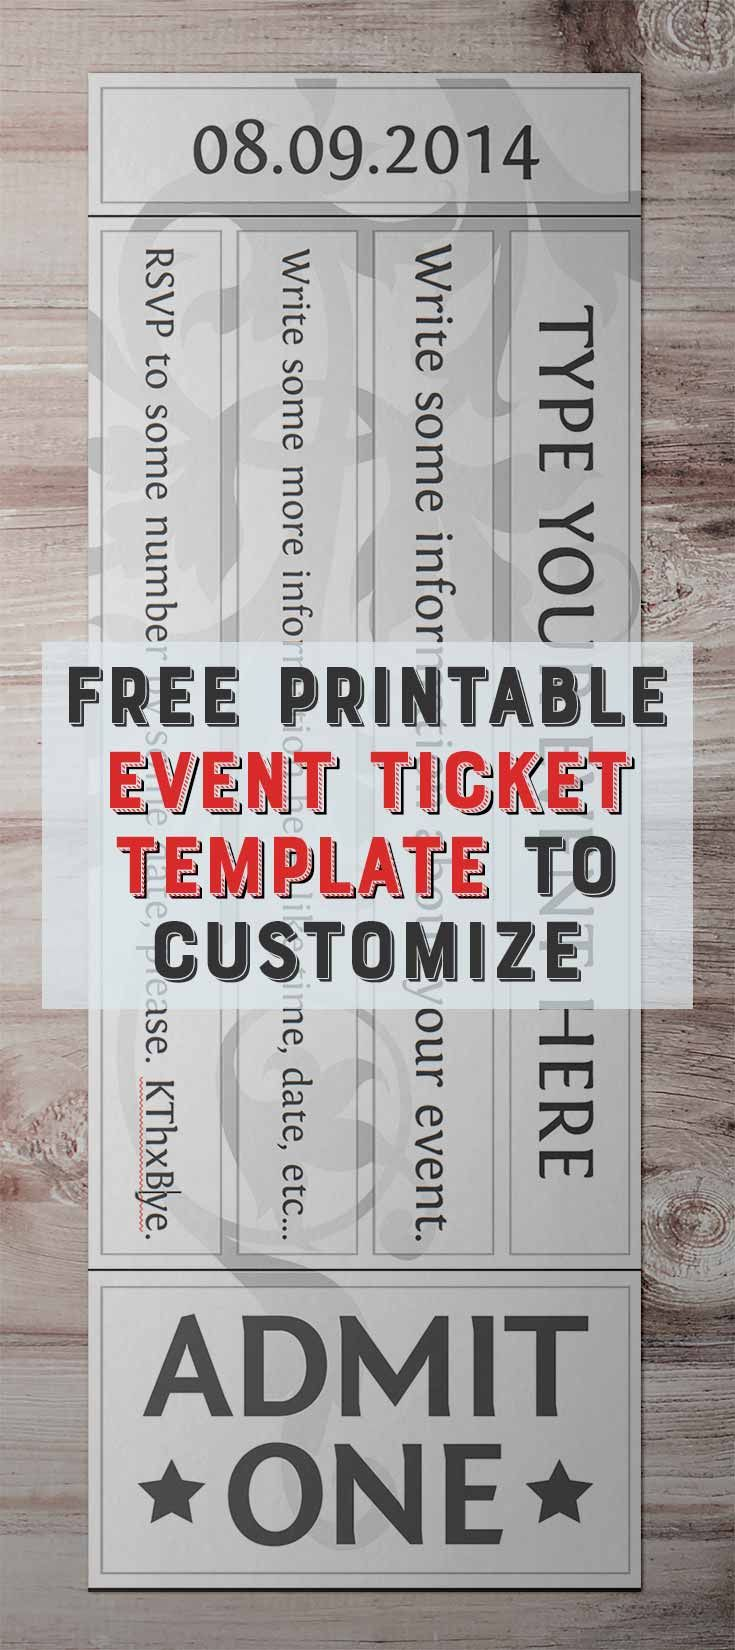 image about Printable Event Tickets named Totally free Printable Party Ticket Template in the direction of Personalize